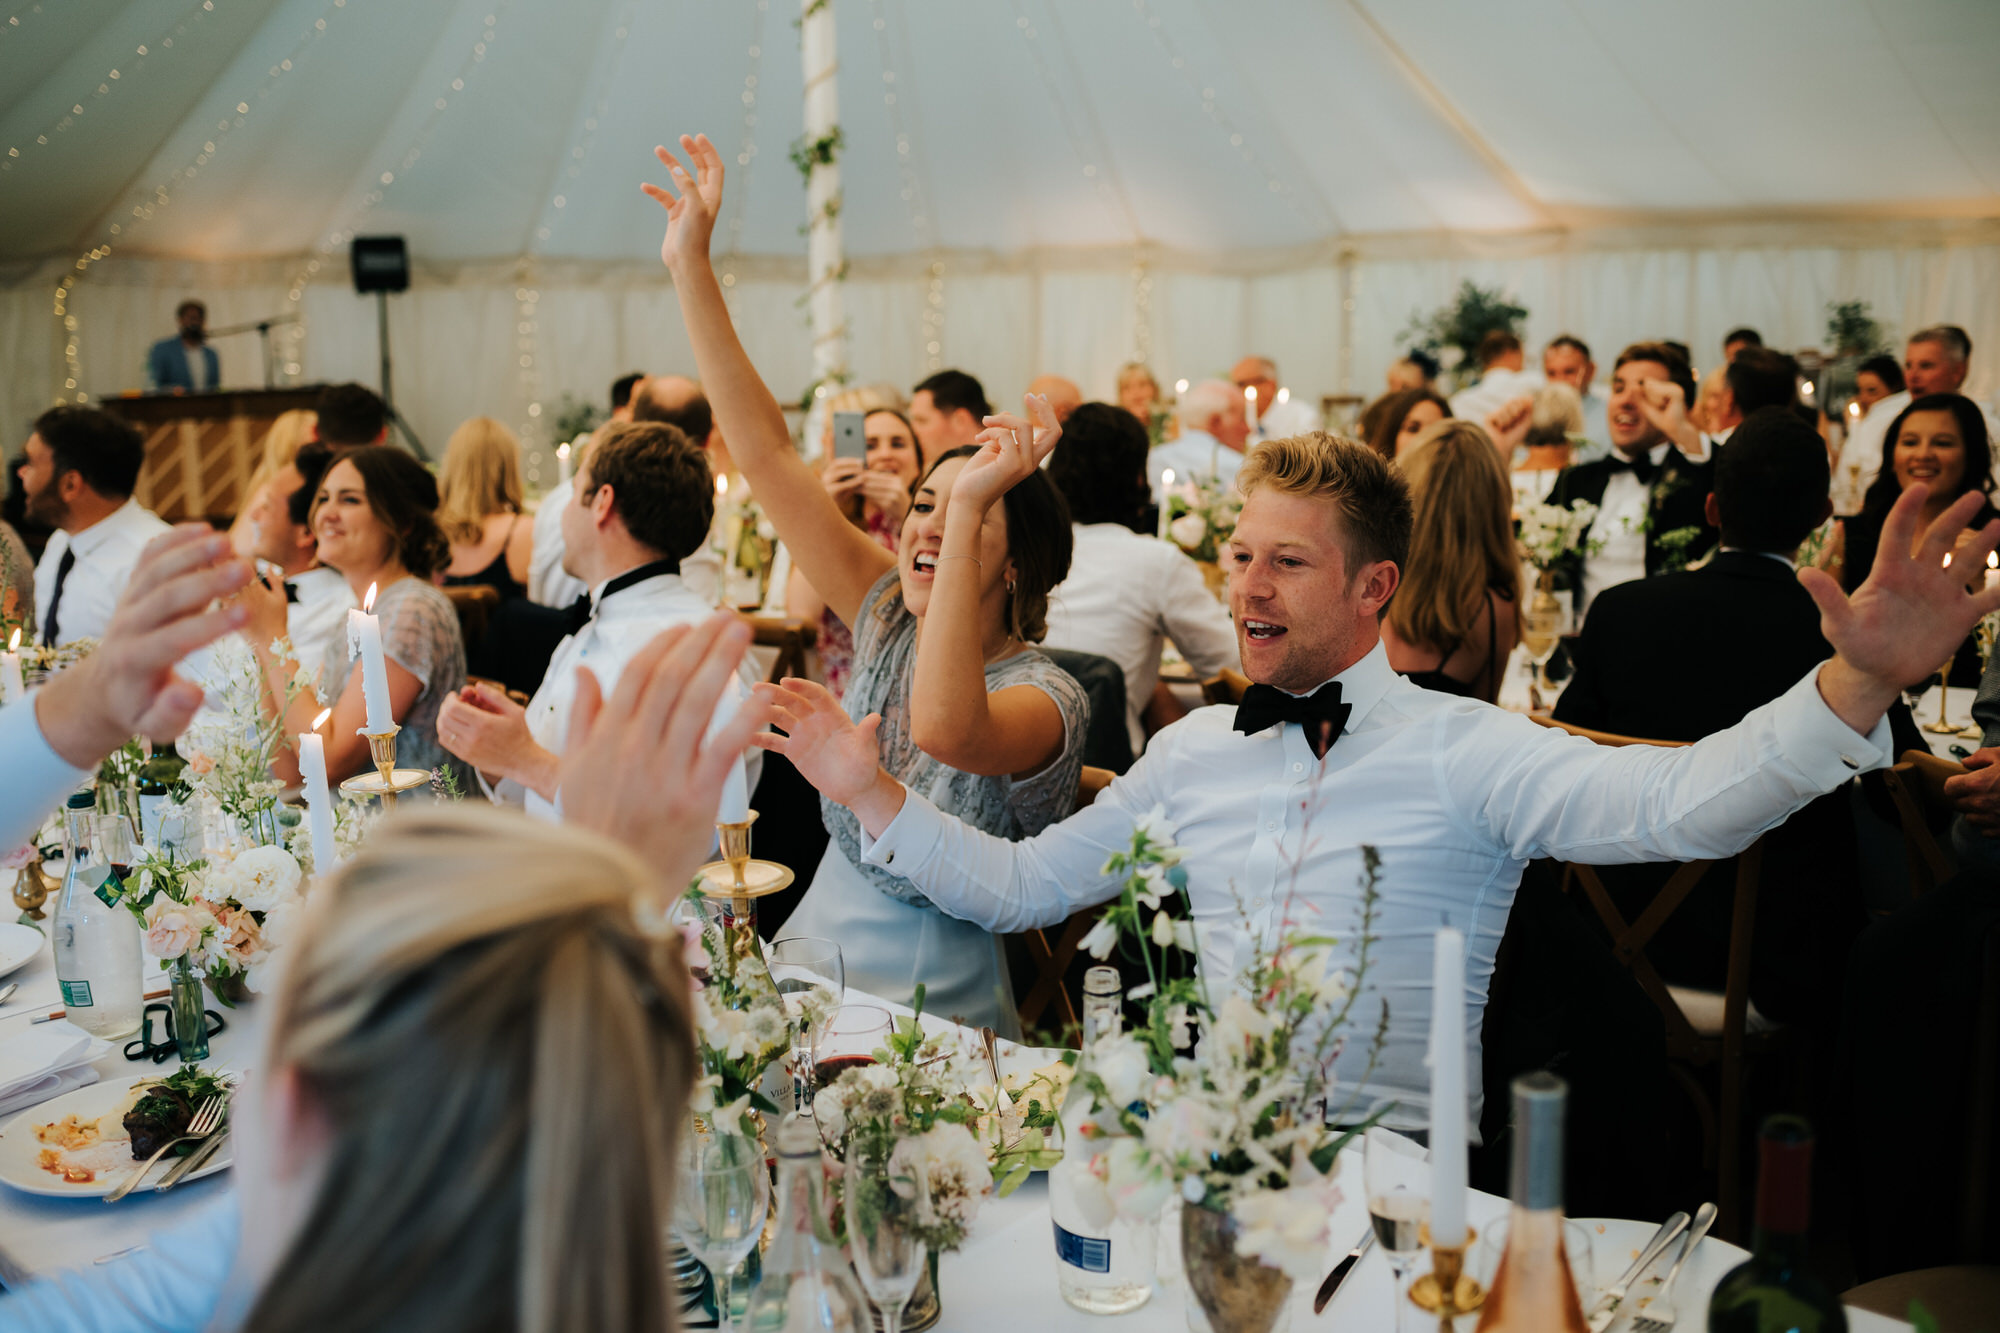 Guests sing along to music at wedding